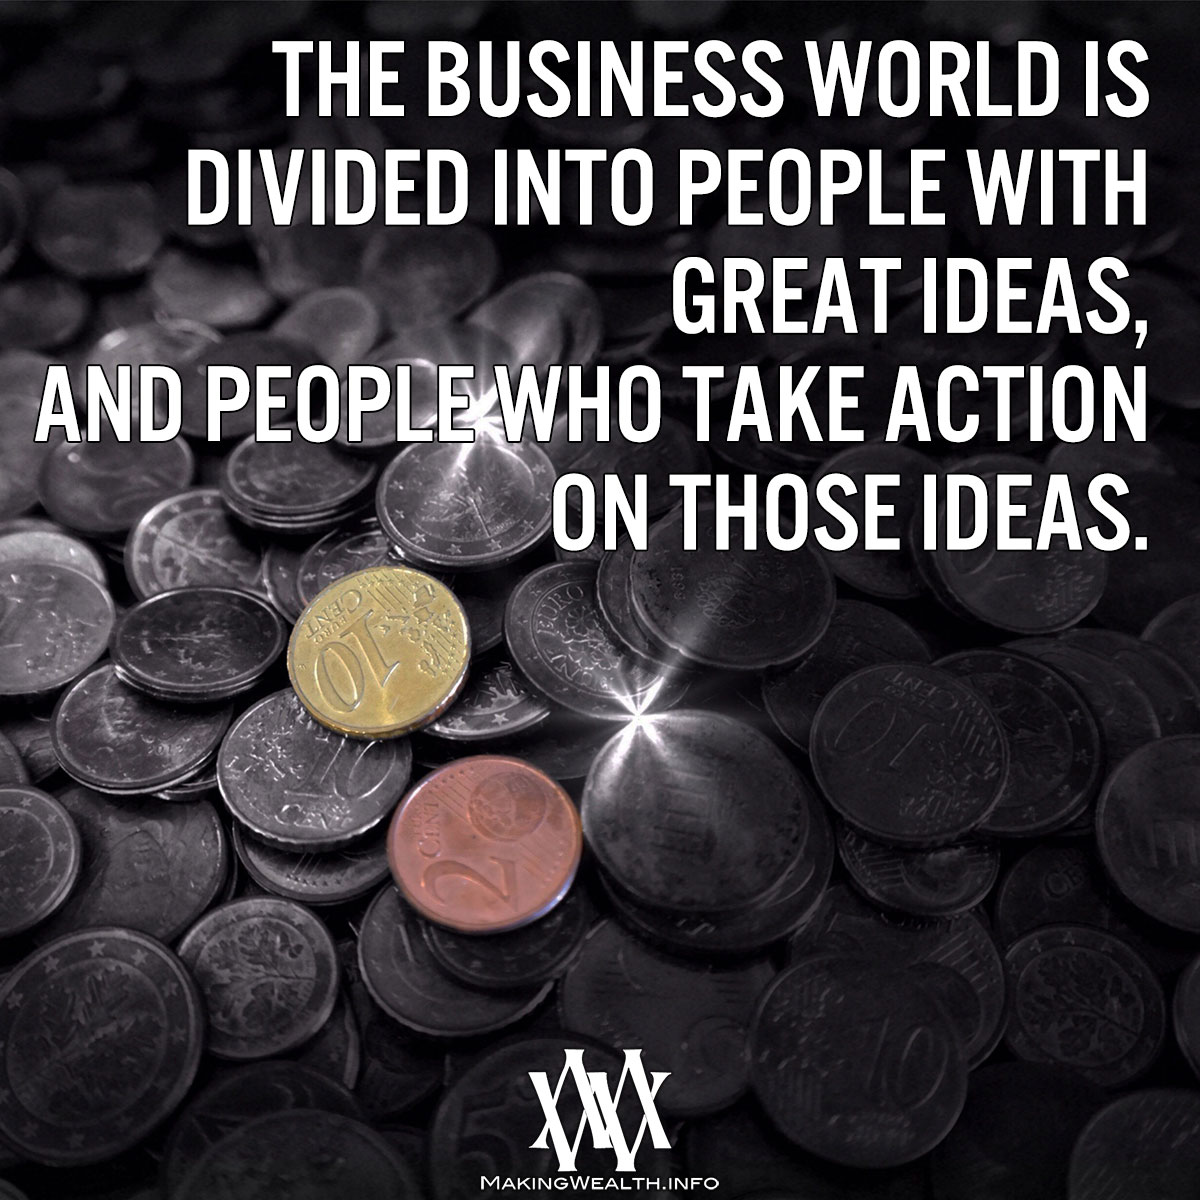 The Business World Is Divided Into People With Great Ideas